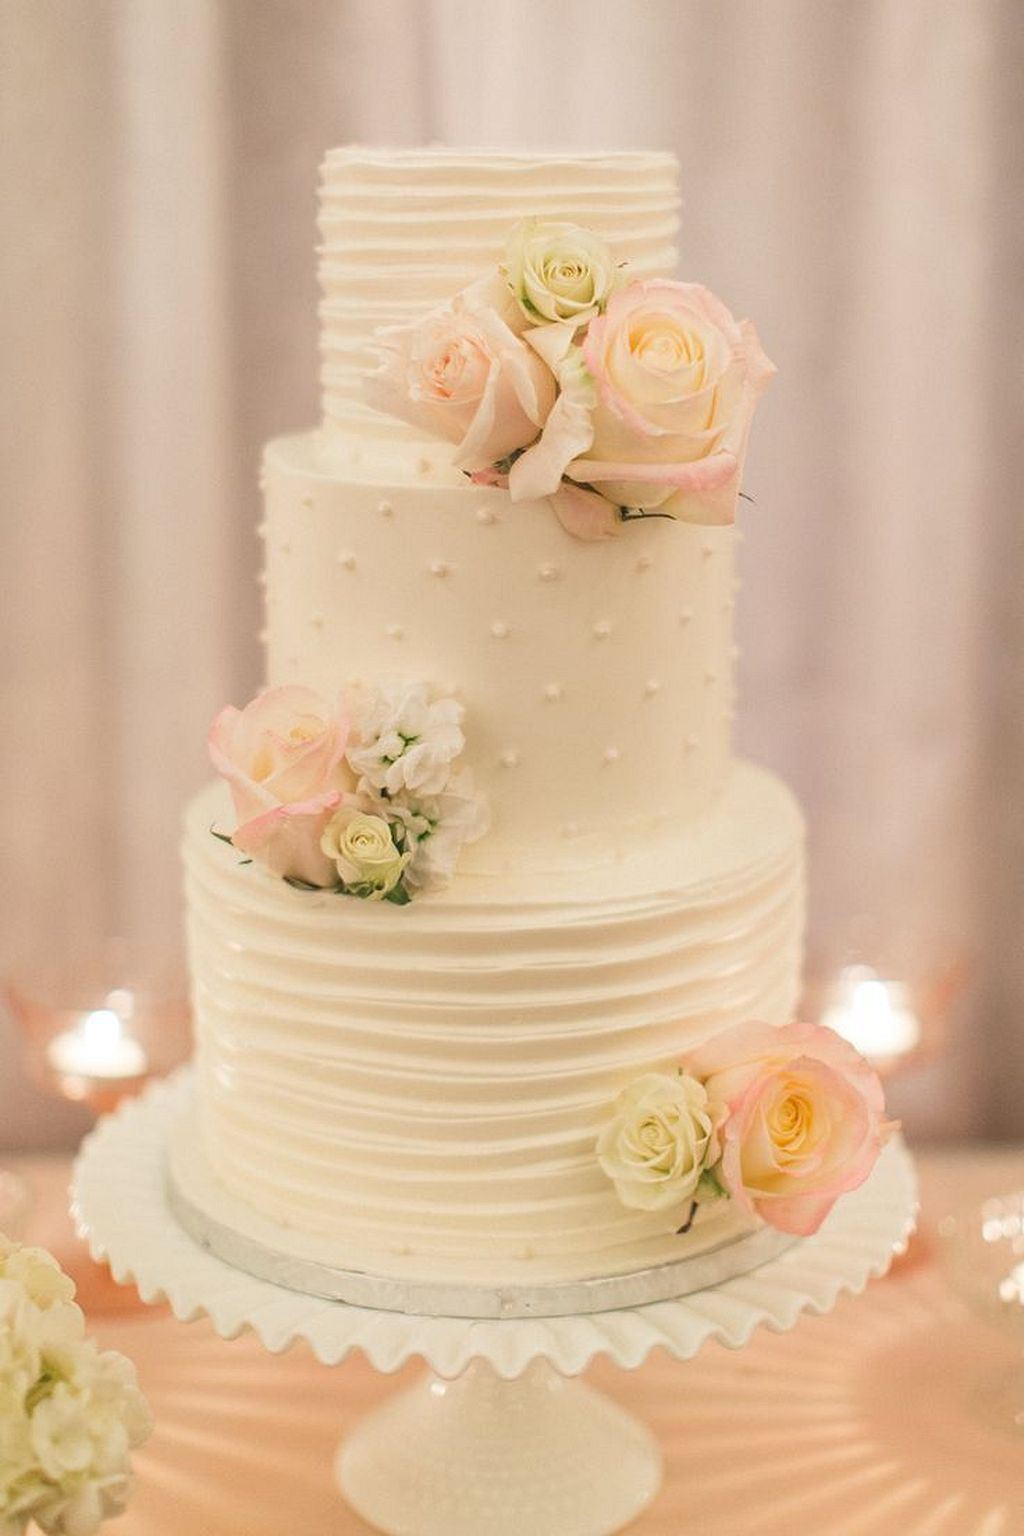 Cool 60+ Simple and Elegant Wedding Cake Ideas https://weddmagz.com ...